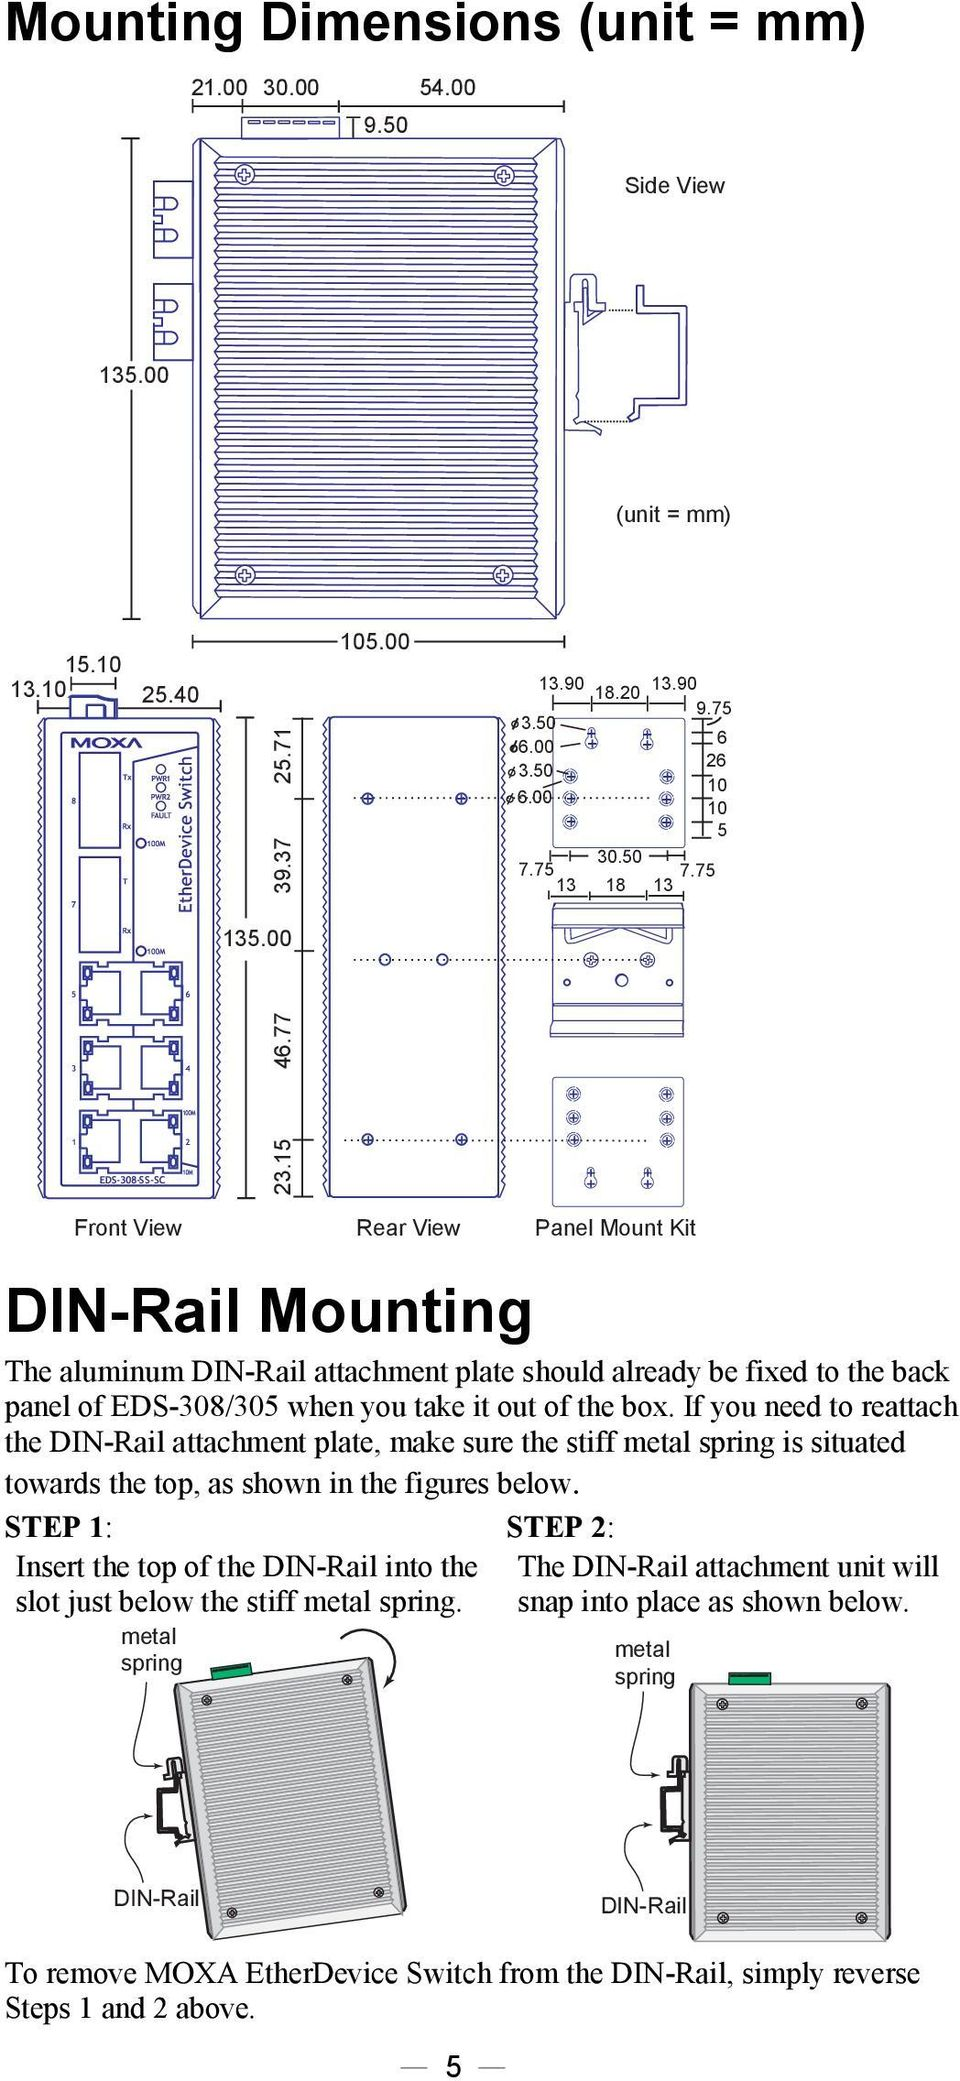 77 + + + + + + + + + + Front View Rear View Panel Mount Kit DIN-Rail Mounting The aluminum DIN-Rail attachment plate should already be fixed to the back panel of EDS-308/305 when you take it out of